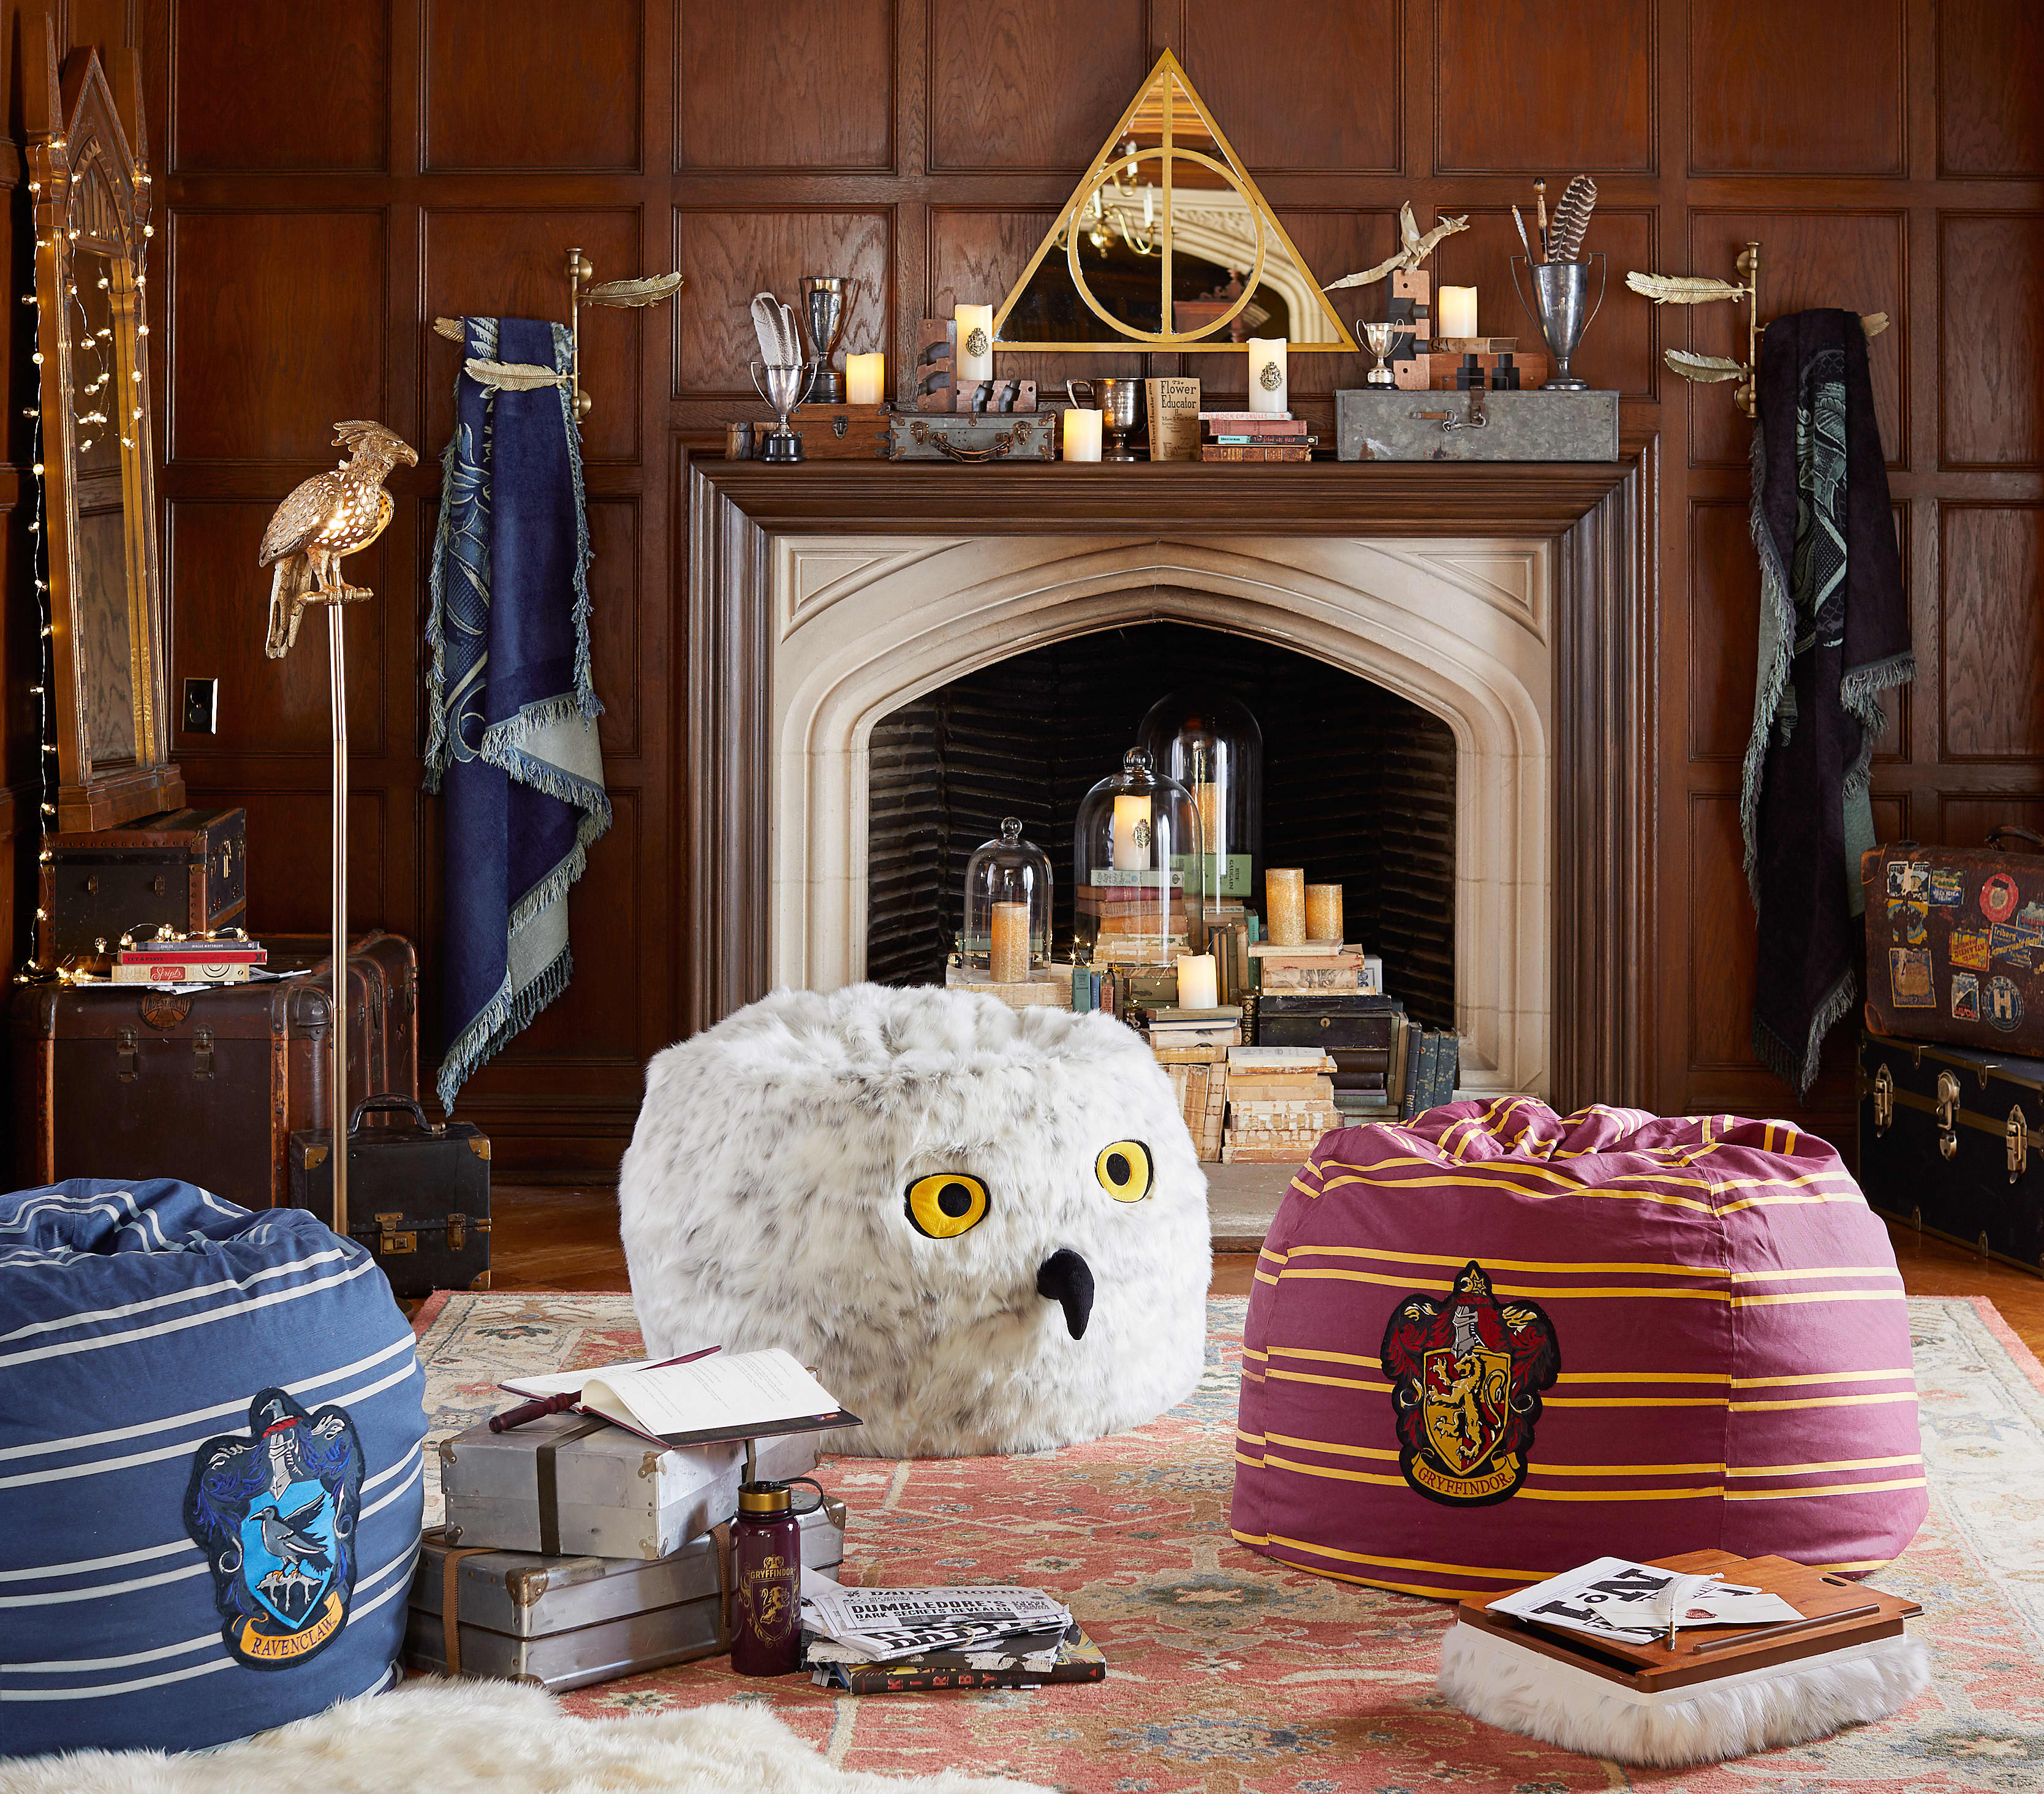 Pottery Barns New Harry Potter Home Decor Has Us On Platform 9 3 4 Gallery Image